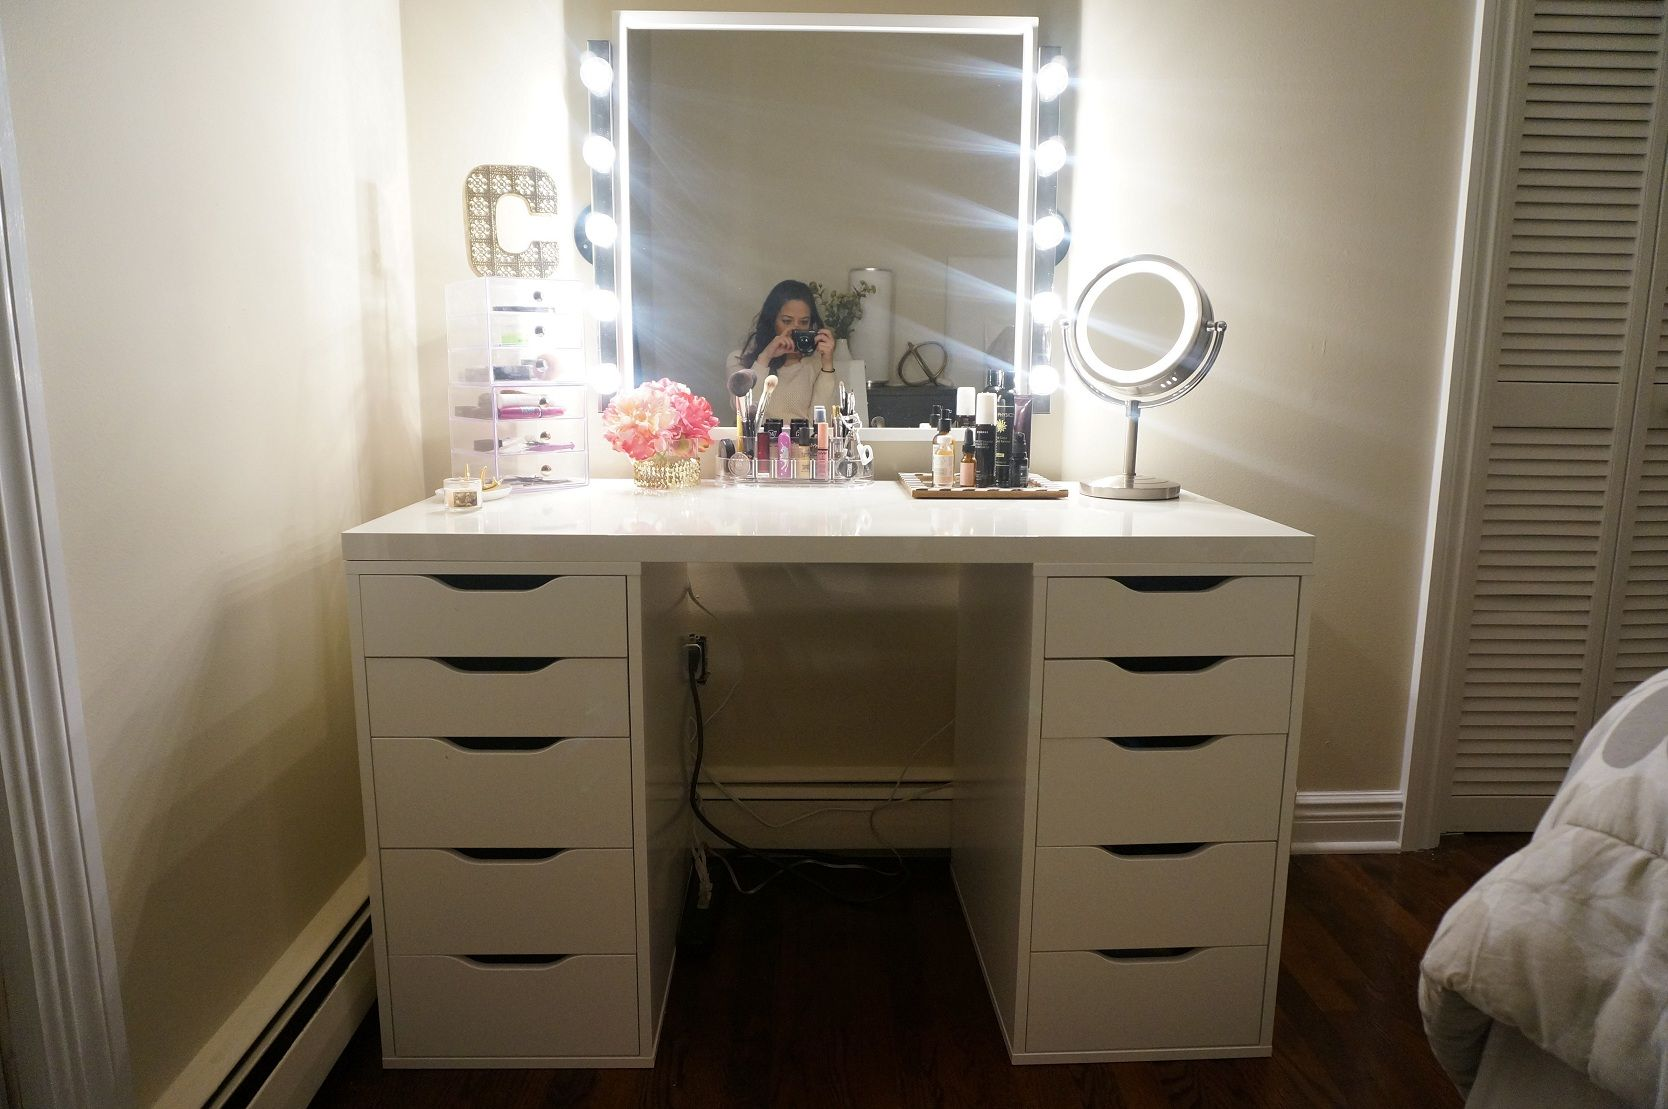 Diy makeup vanity mirror with lights home style pinterest diy diy makeup vanity mirror with lights mozeypictures Choice Image